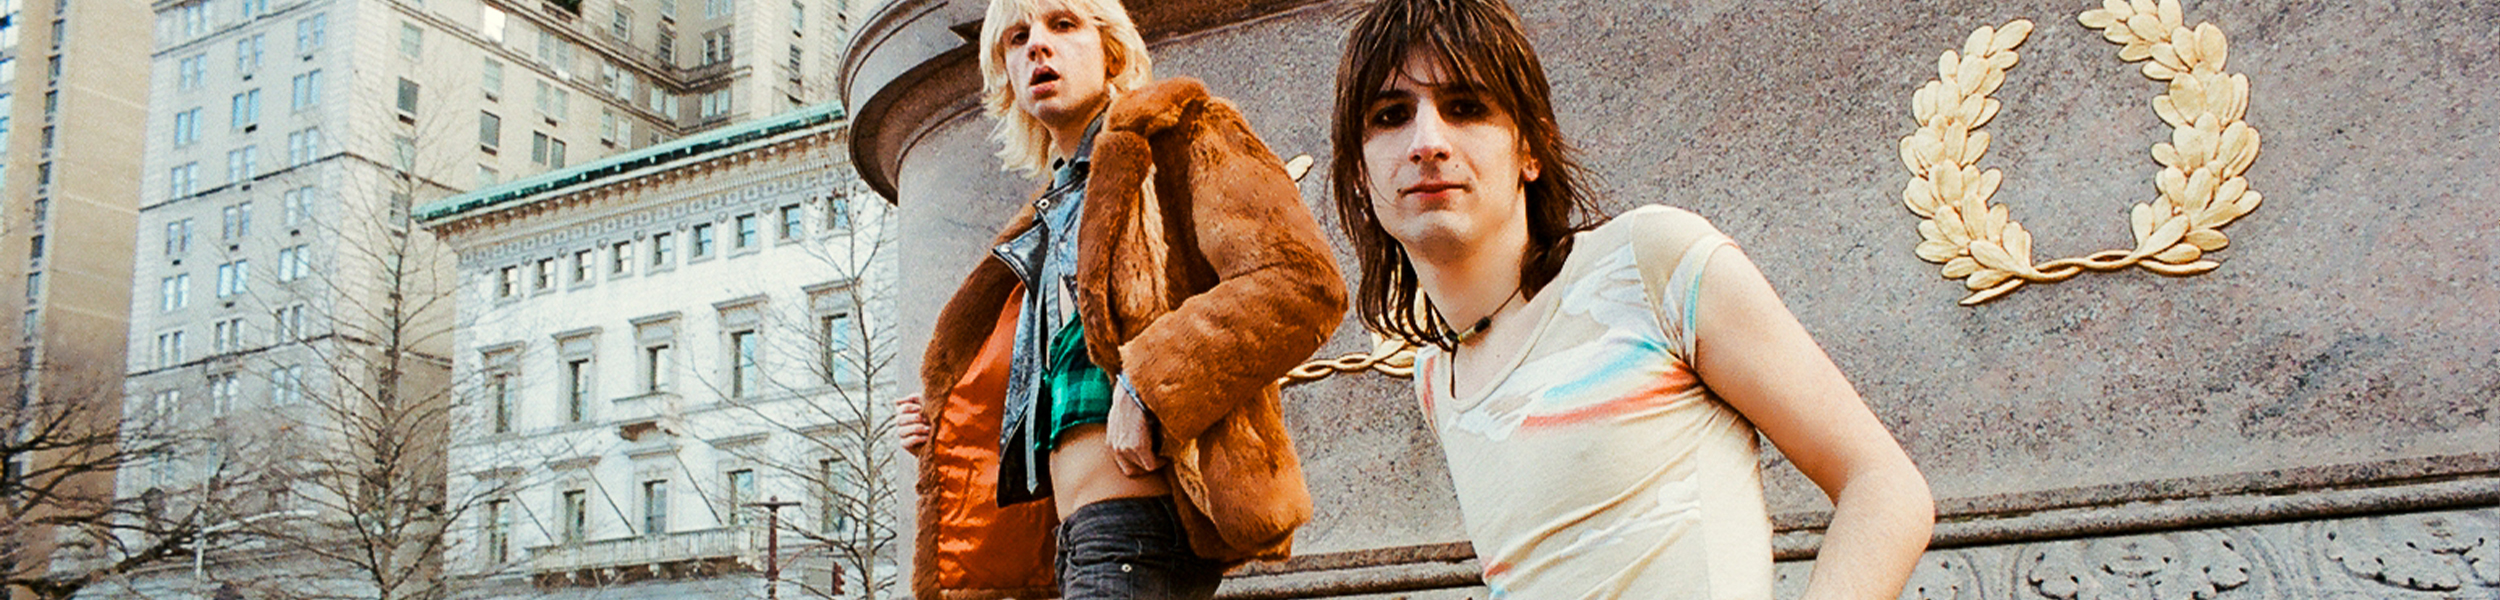 The Lemon Twigs - New Single 'No One Holds You Closer (Than The One You Haven't Met)' Out Now